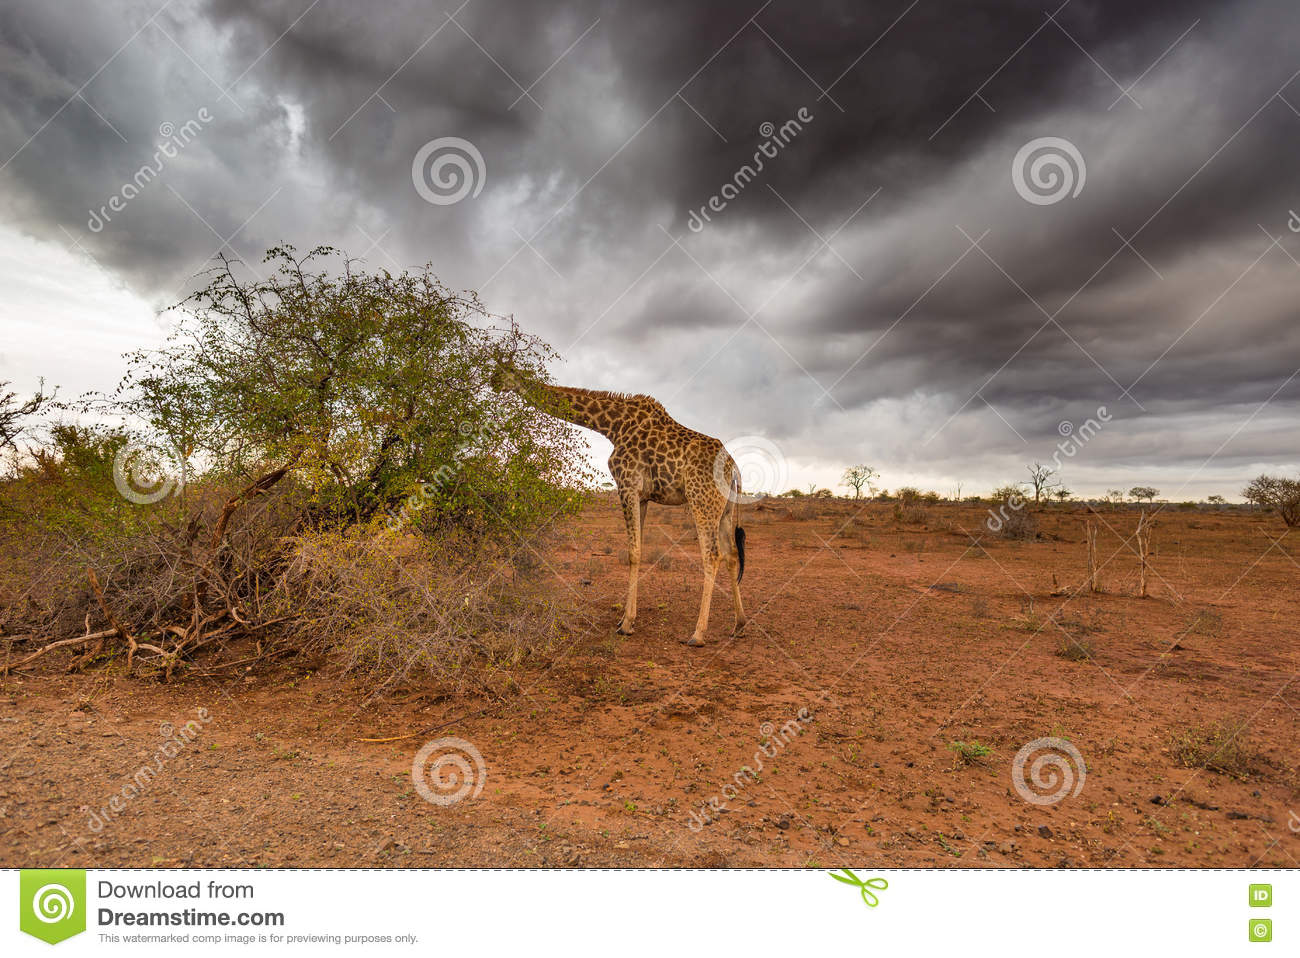 Giraffe eating from Acacia tree in the bush, dramatic stormy sky. Wildlife safari in the Kruger National Park, major travel